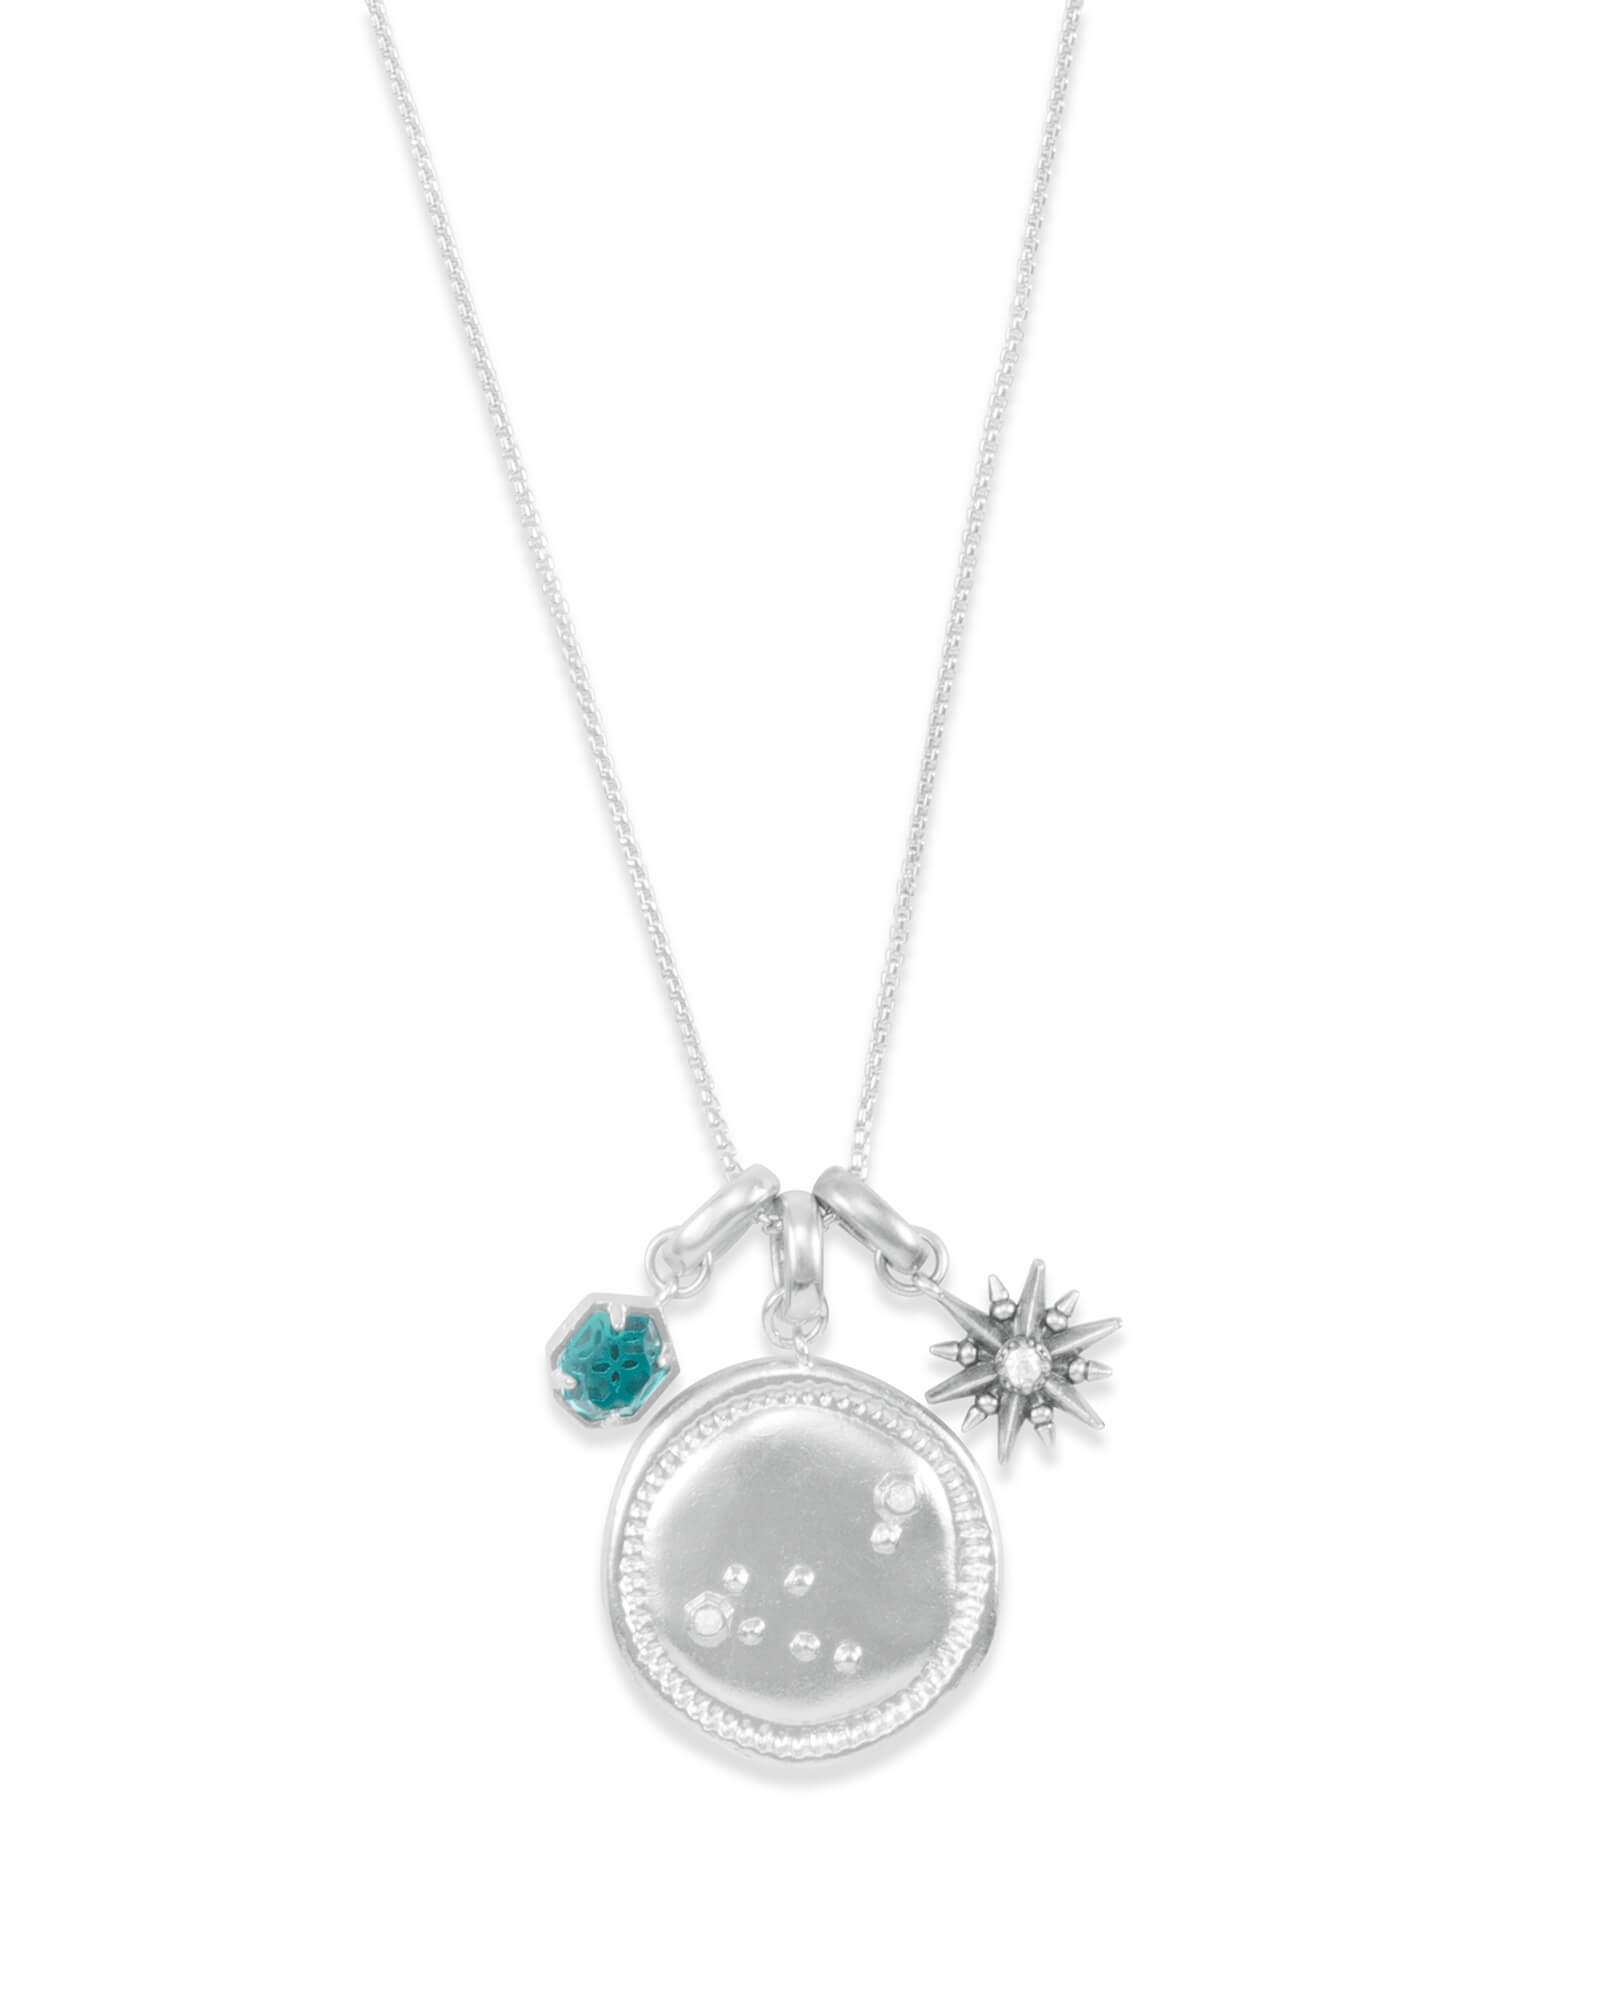 December Capricorn Charm Necklace Set in Silver